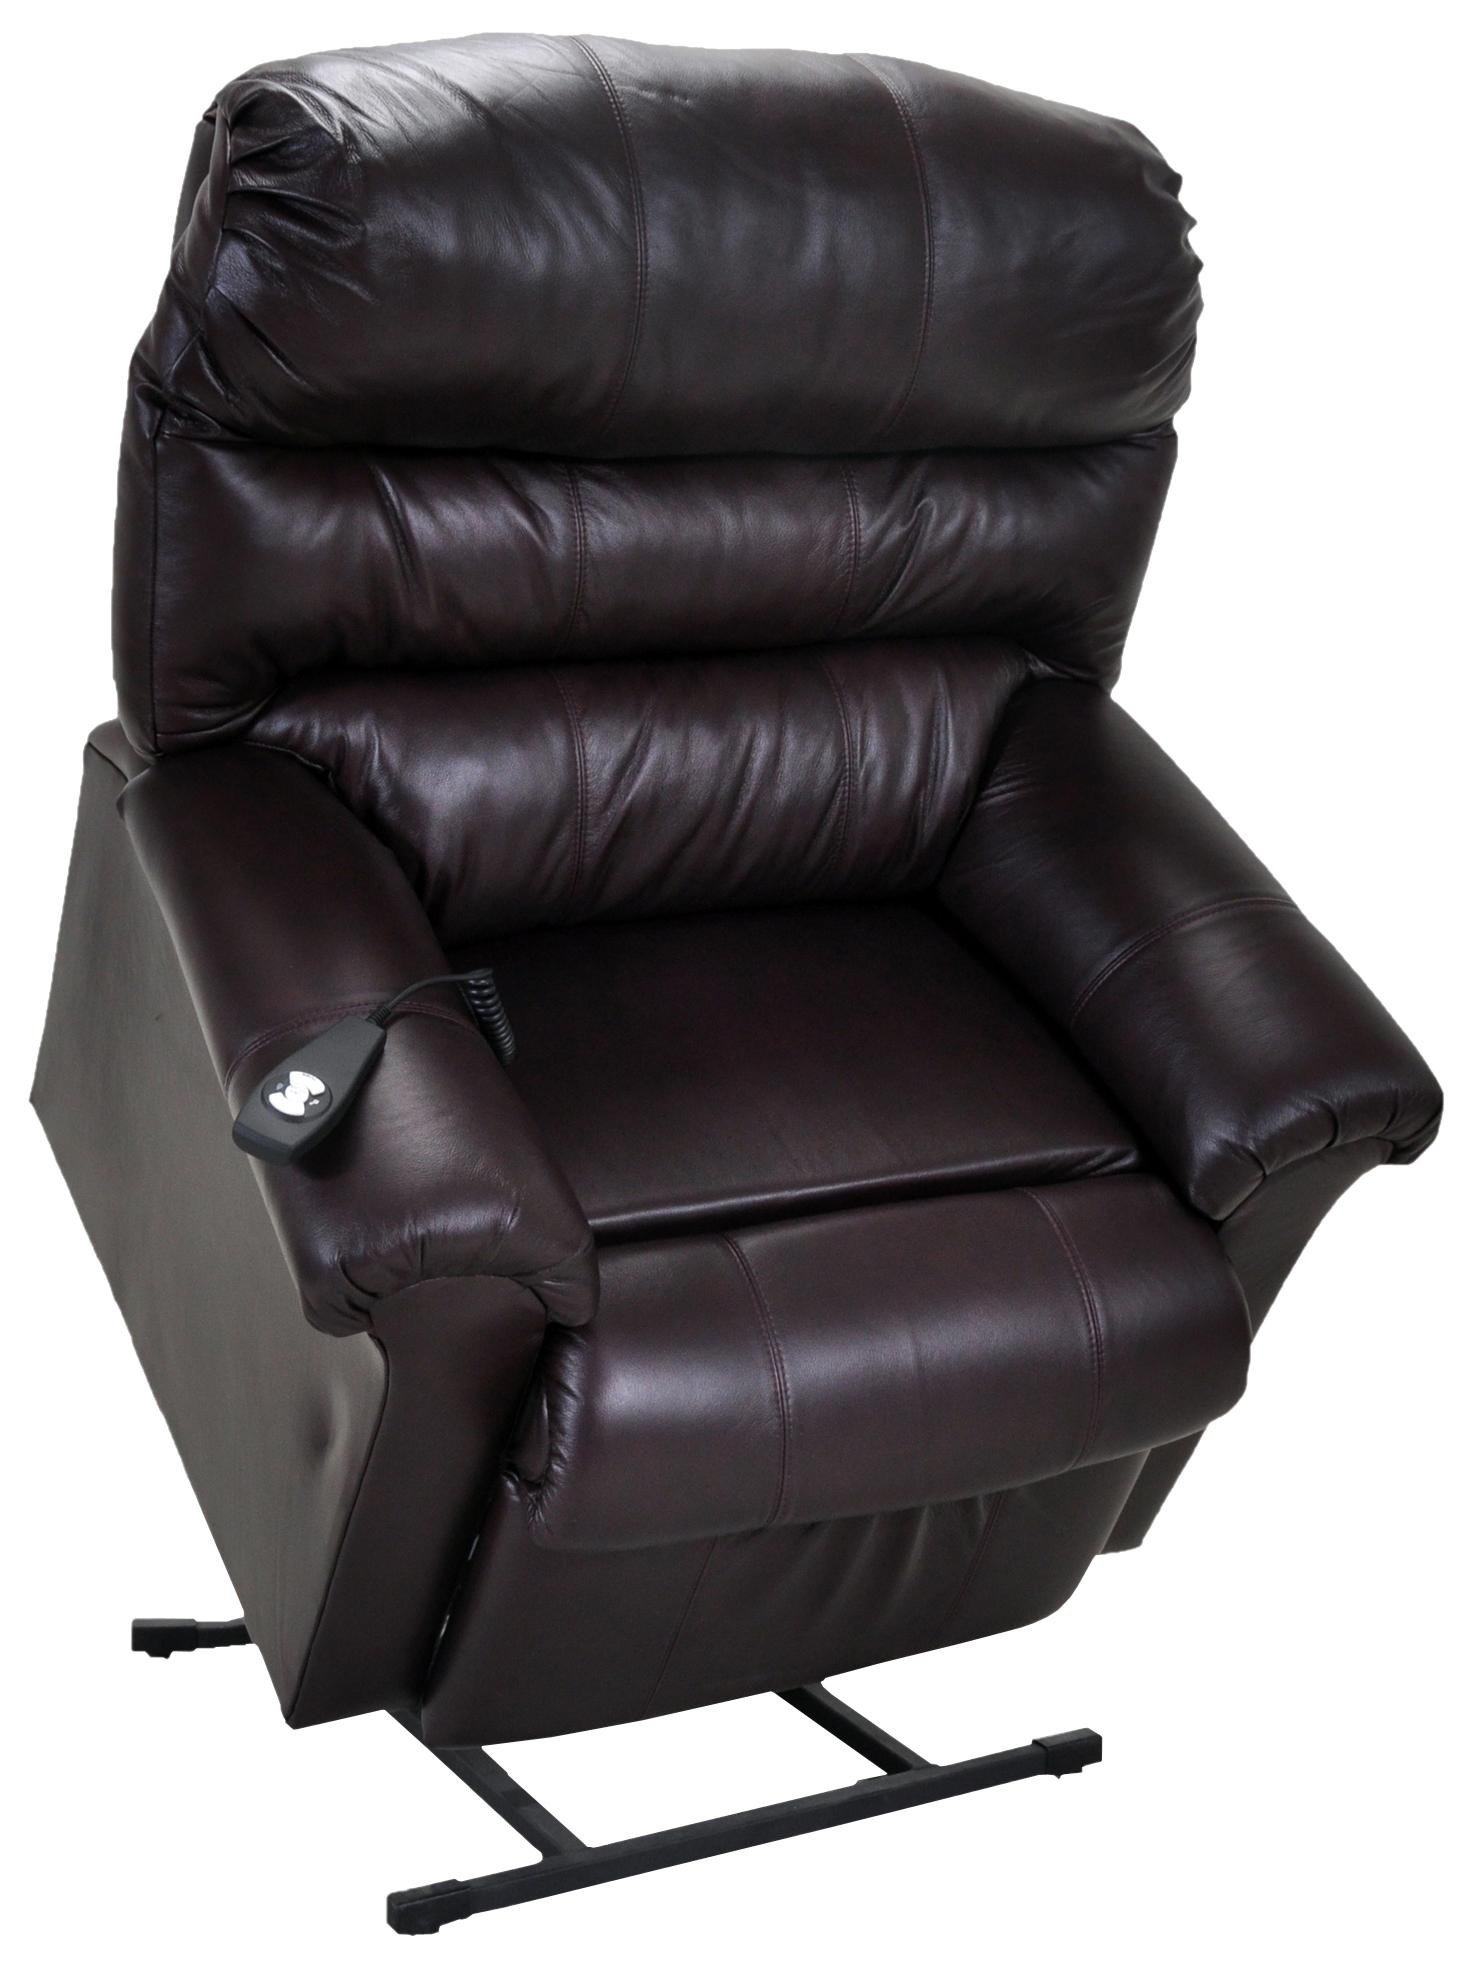 Franklin Lift and Power Recliners Leather Match Power Lift Recliner with Plush Pillow Arms  sc 1 st  Wilcox Furniture & Leather Match Power Lift Recliner with Plush Pillow Arms - Lift ... islam-shia.org